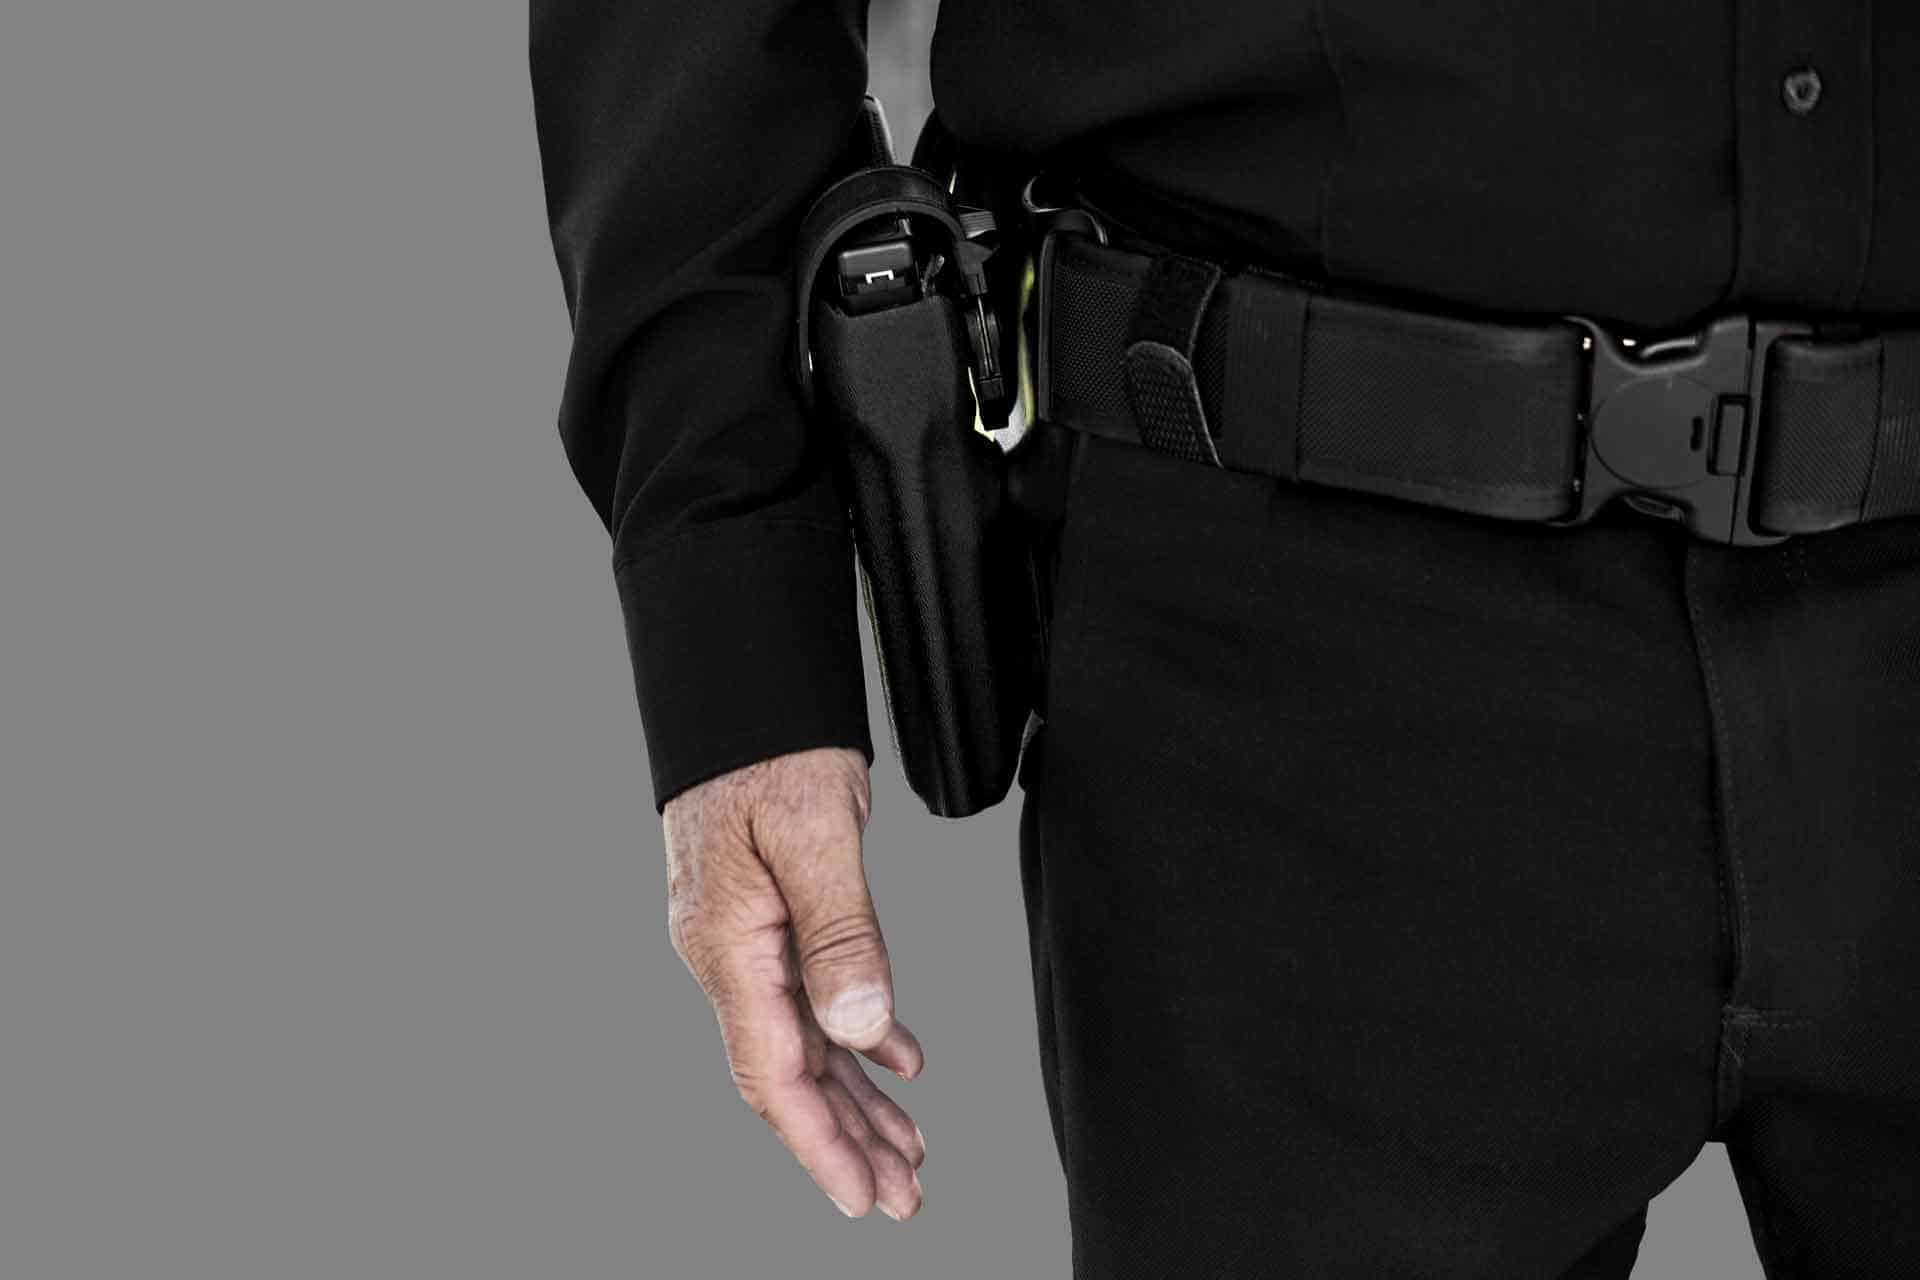 Armed Security Guard and his holster